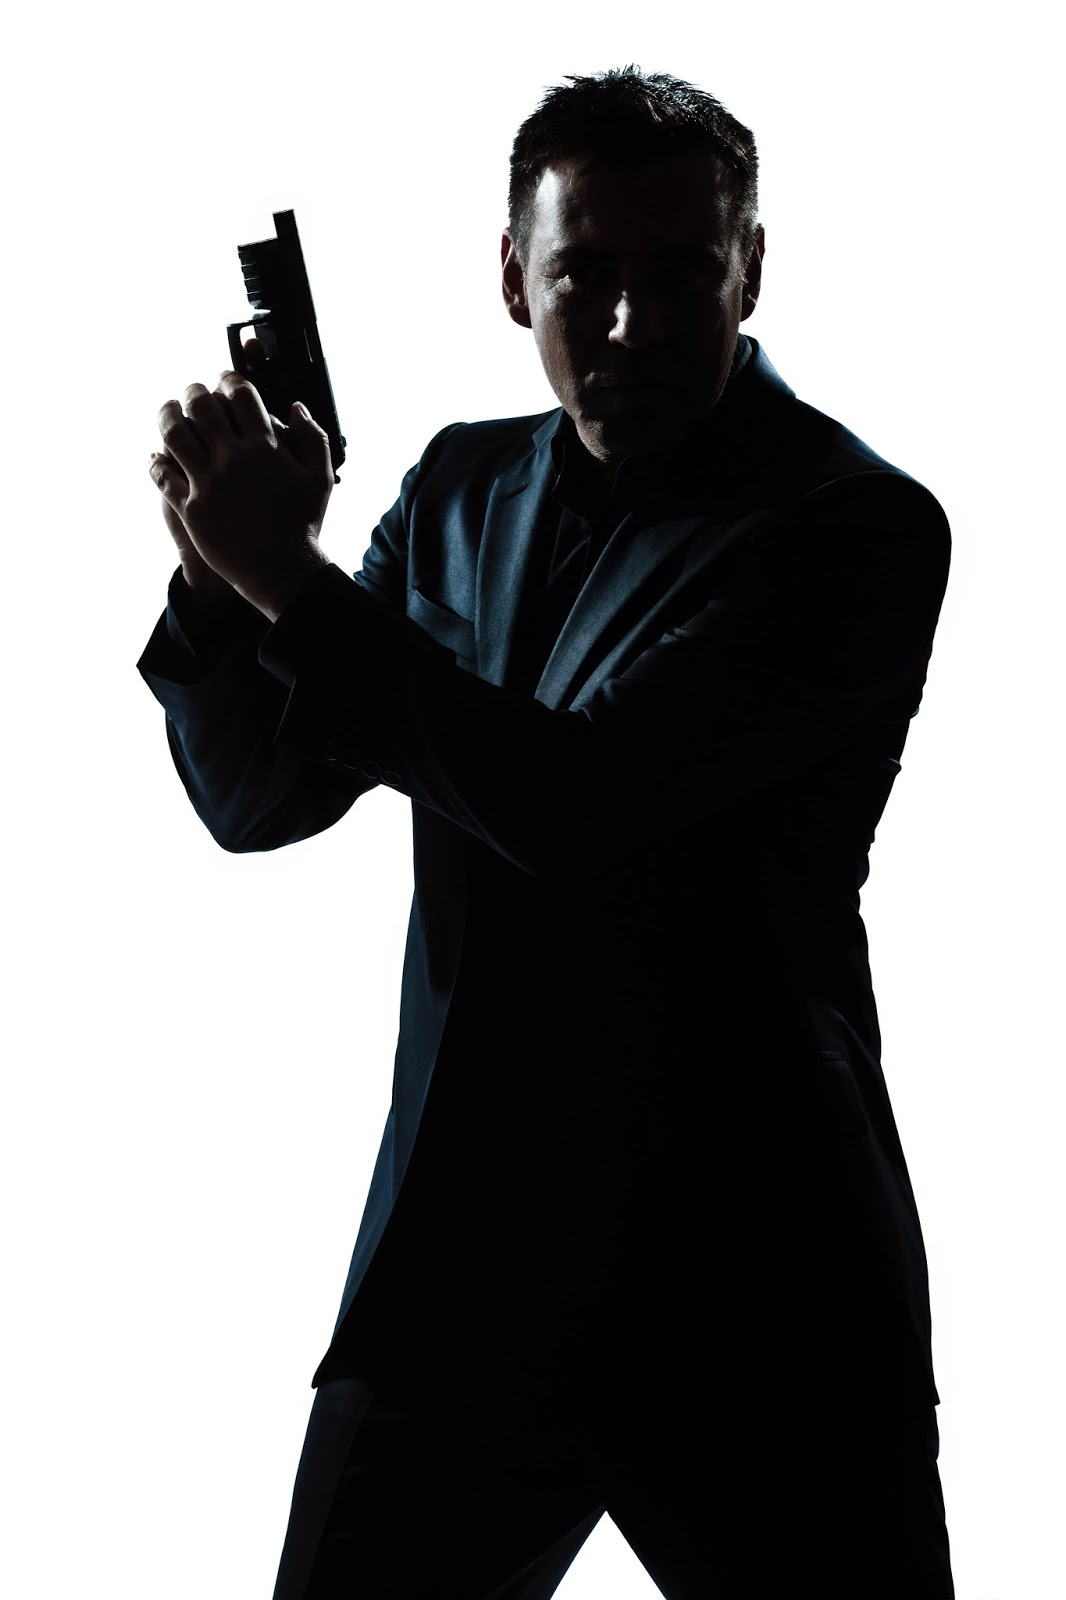 Image:  A man in a suit holds handgun.  Will A Preacher Man Rob God by collecting tithes and not taking care of the widow, the immigrant, the orphan?